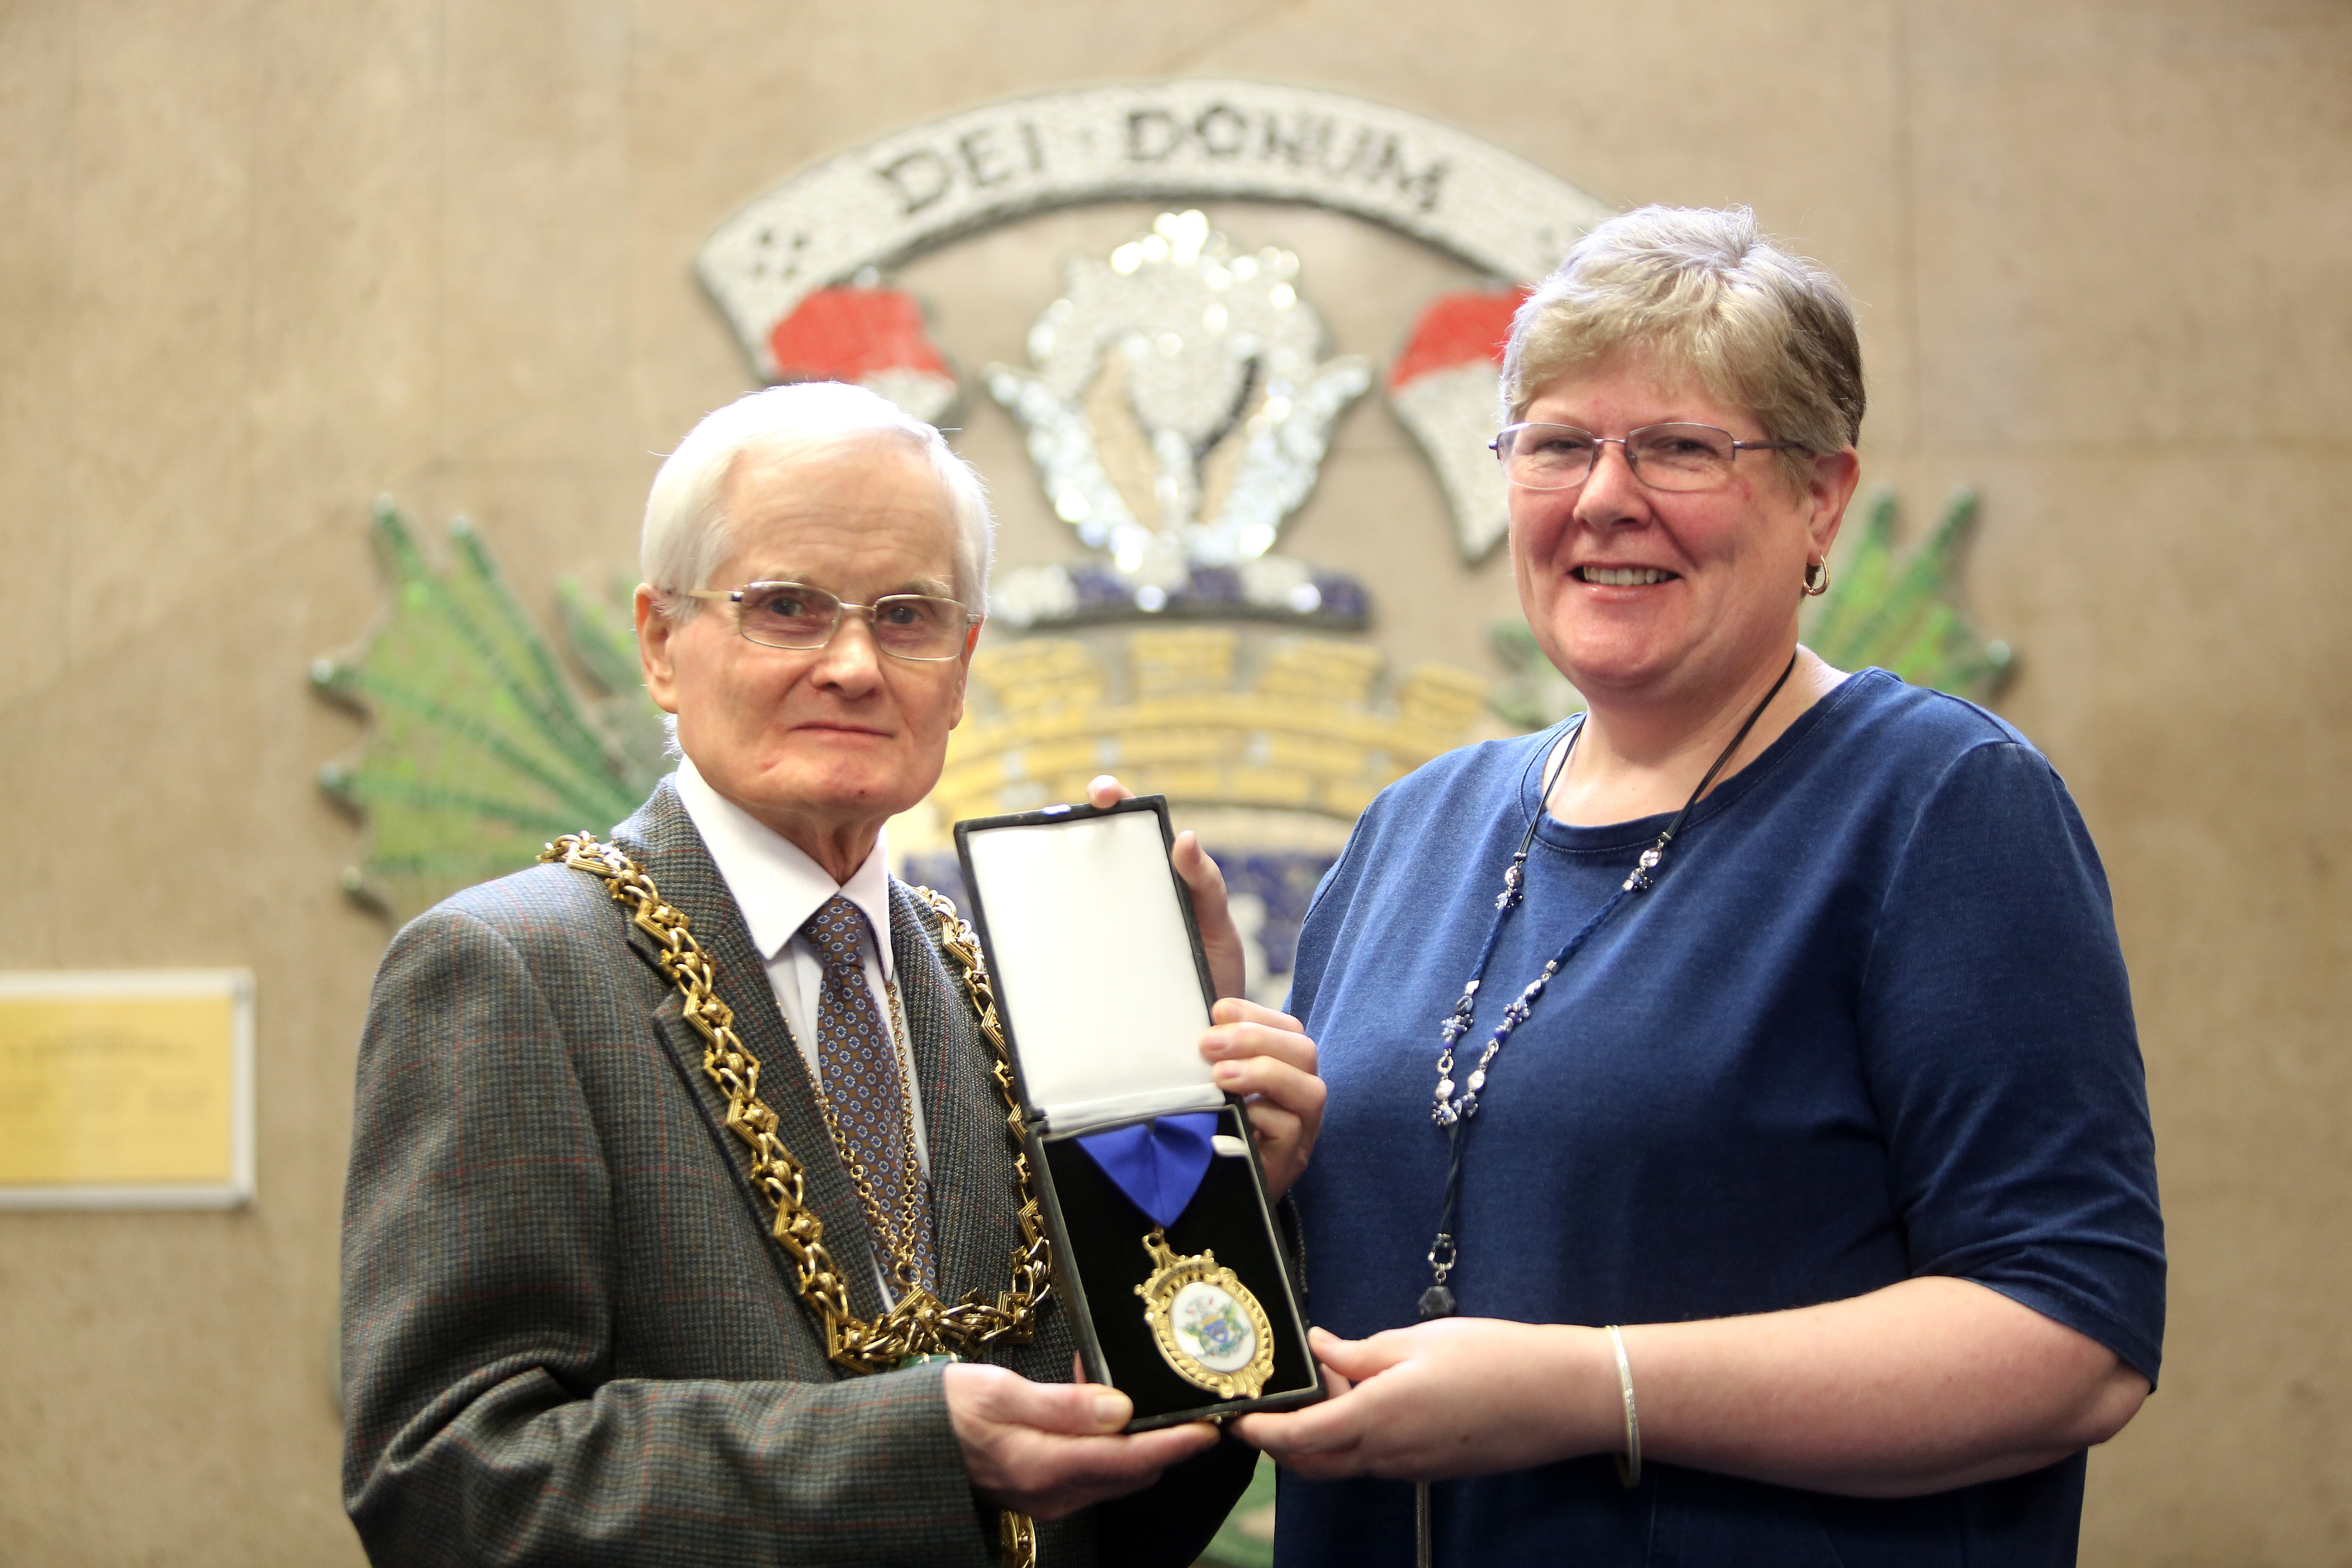 Lord Provost Ian Borthwick with 2018 Dundee Citizen of the Year Debbie Findlay.